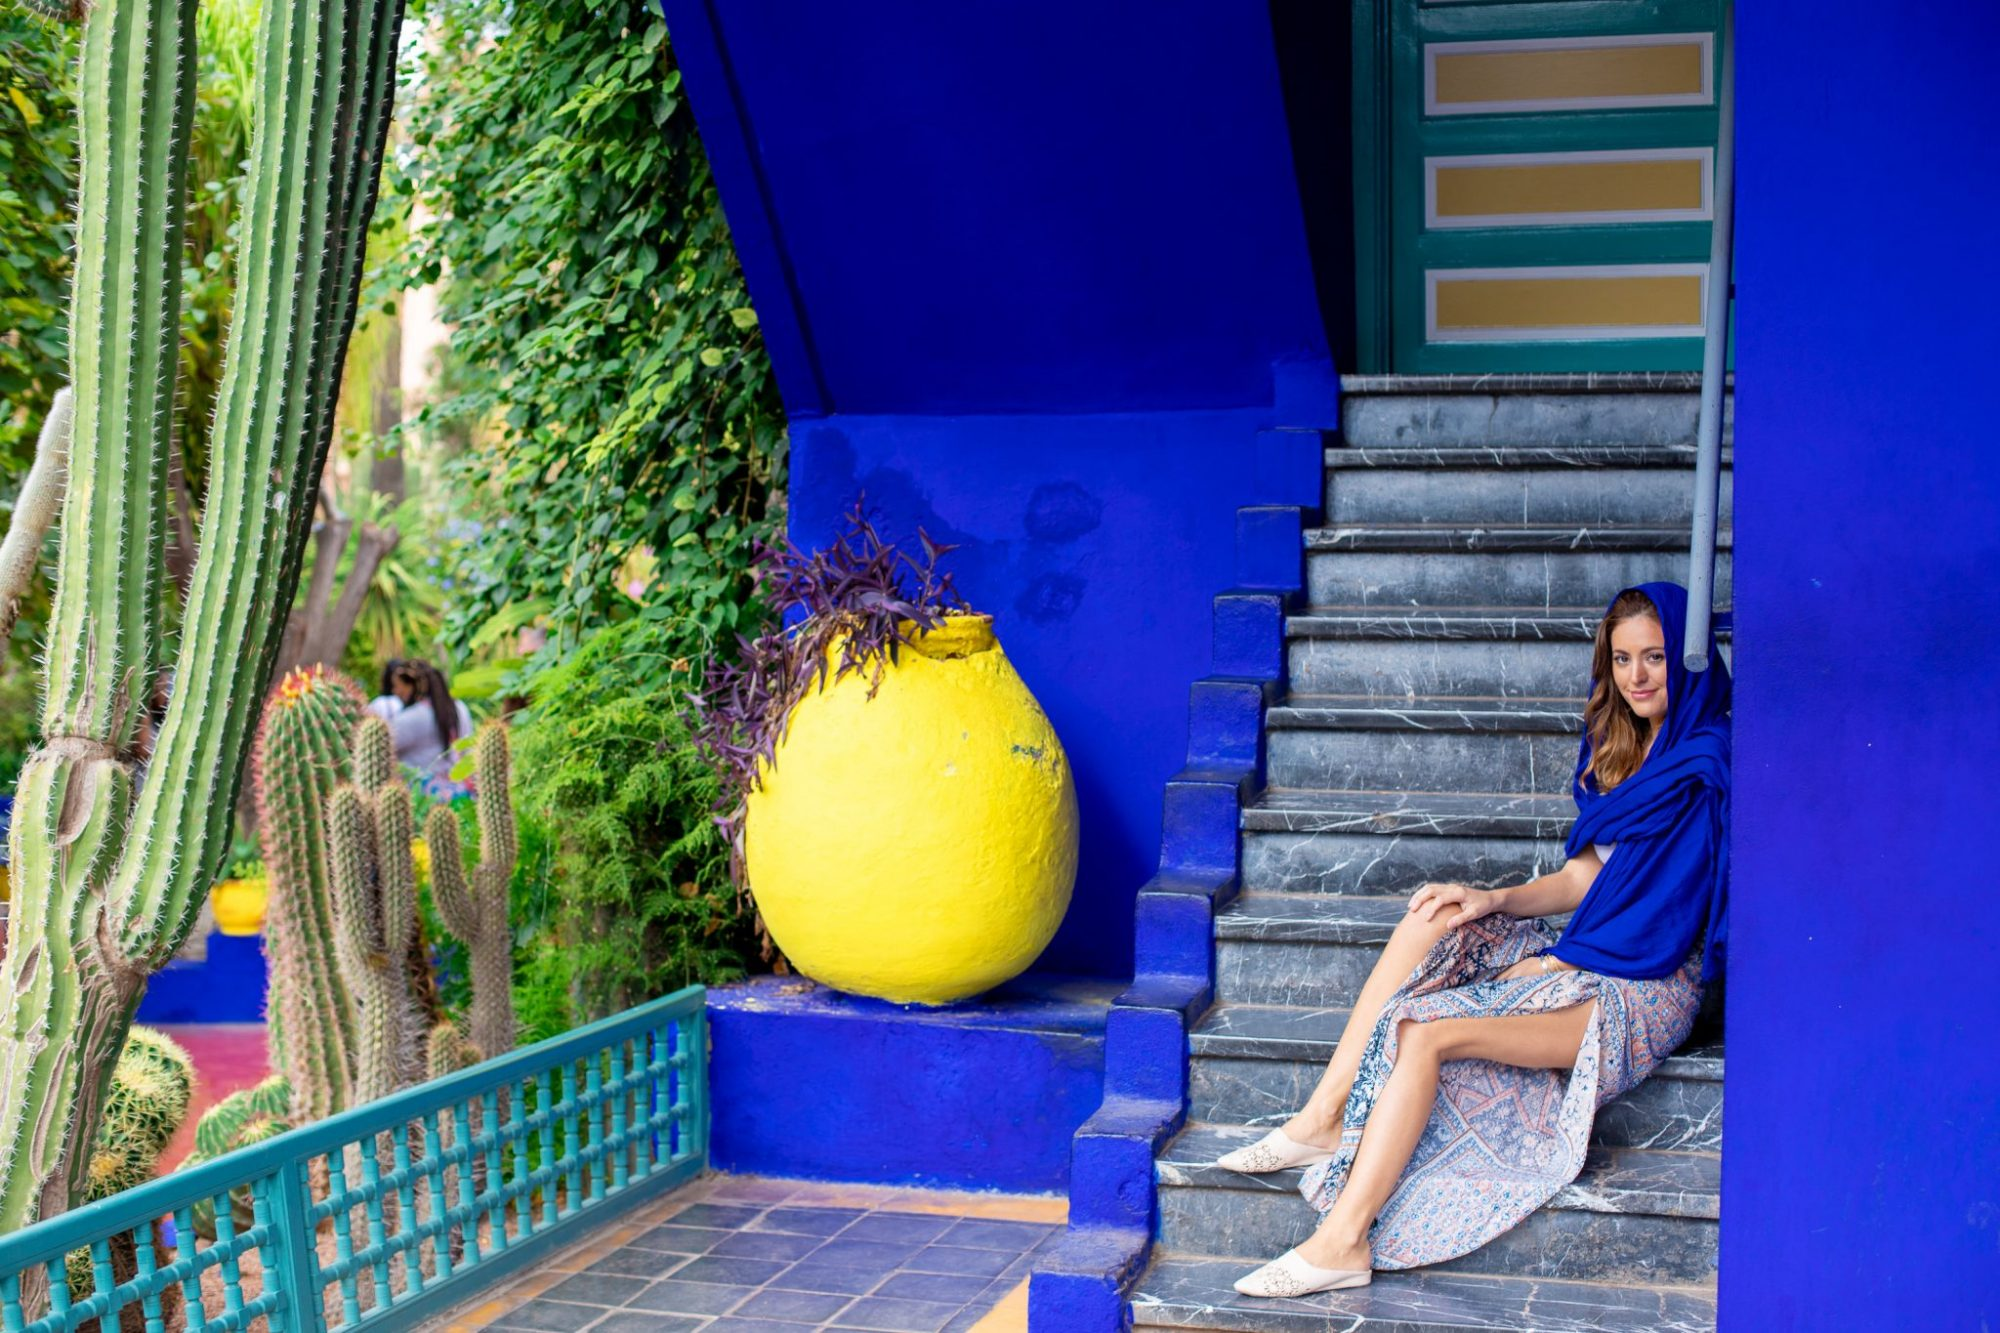 le jardin majorelle, ysl museum marrakech, musee yves saint laurent, what to do in marrakech, fashion on marrakech, what to do in morocco